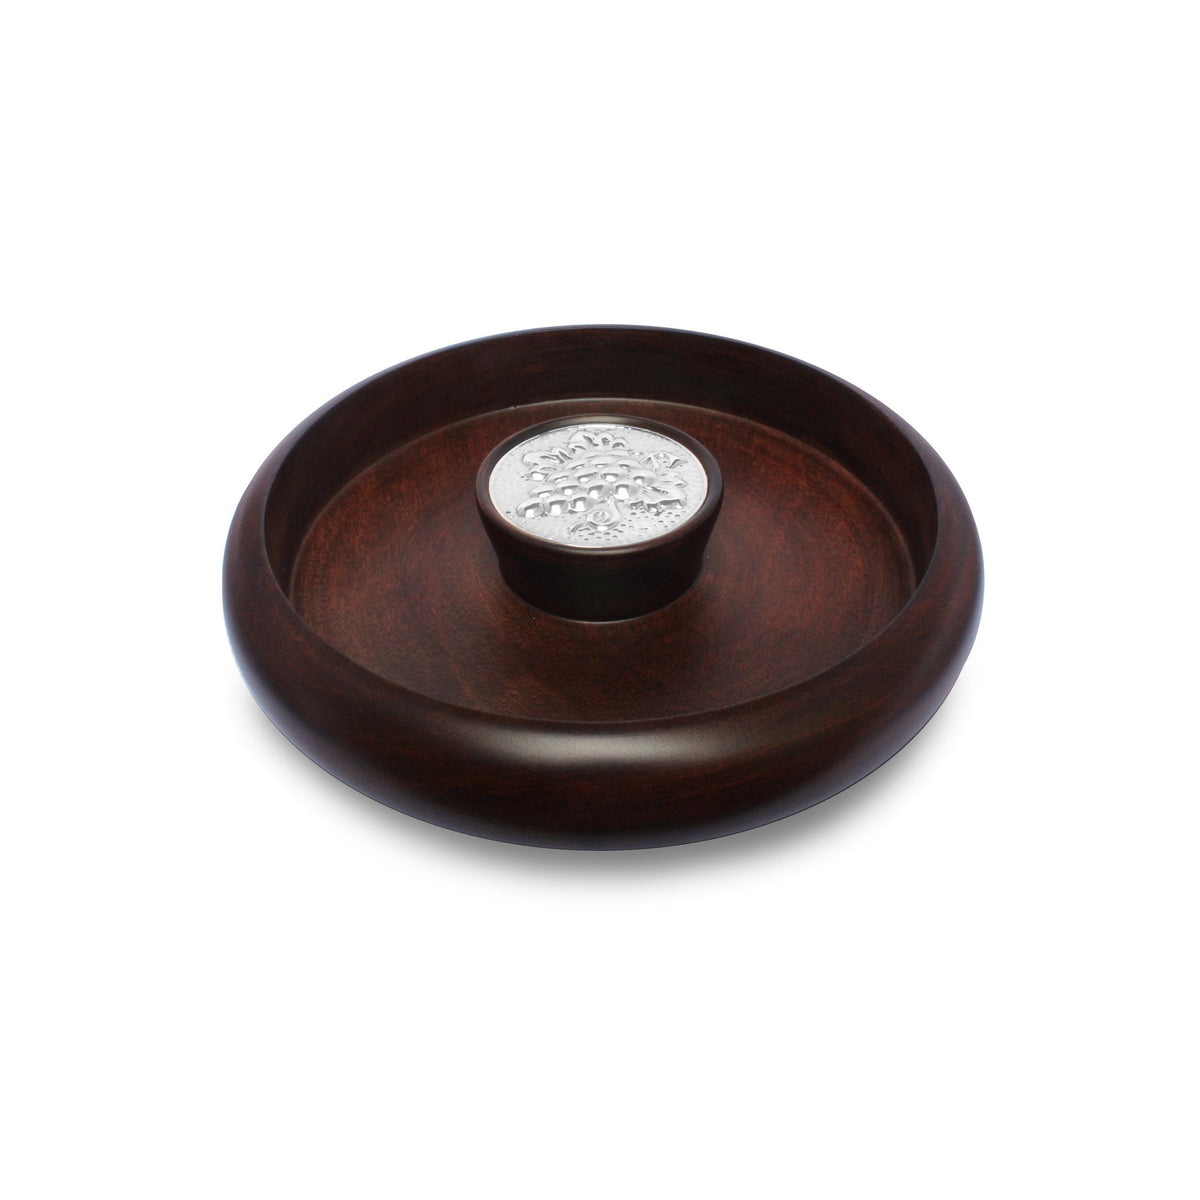 Mahogany Snack Bowl with Sterling Silver Grapes Accent - Qinti - The Peruvian Shop